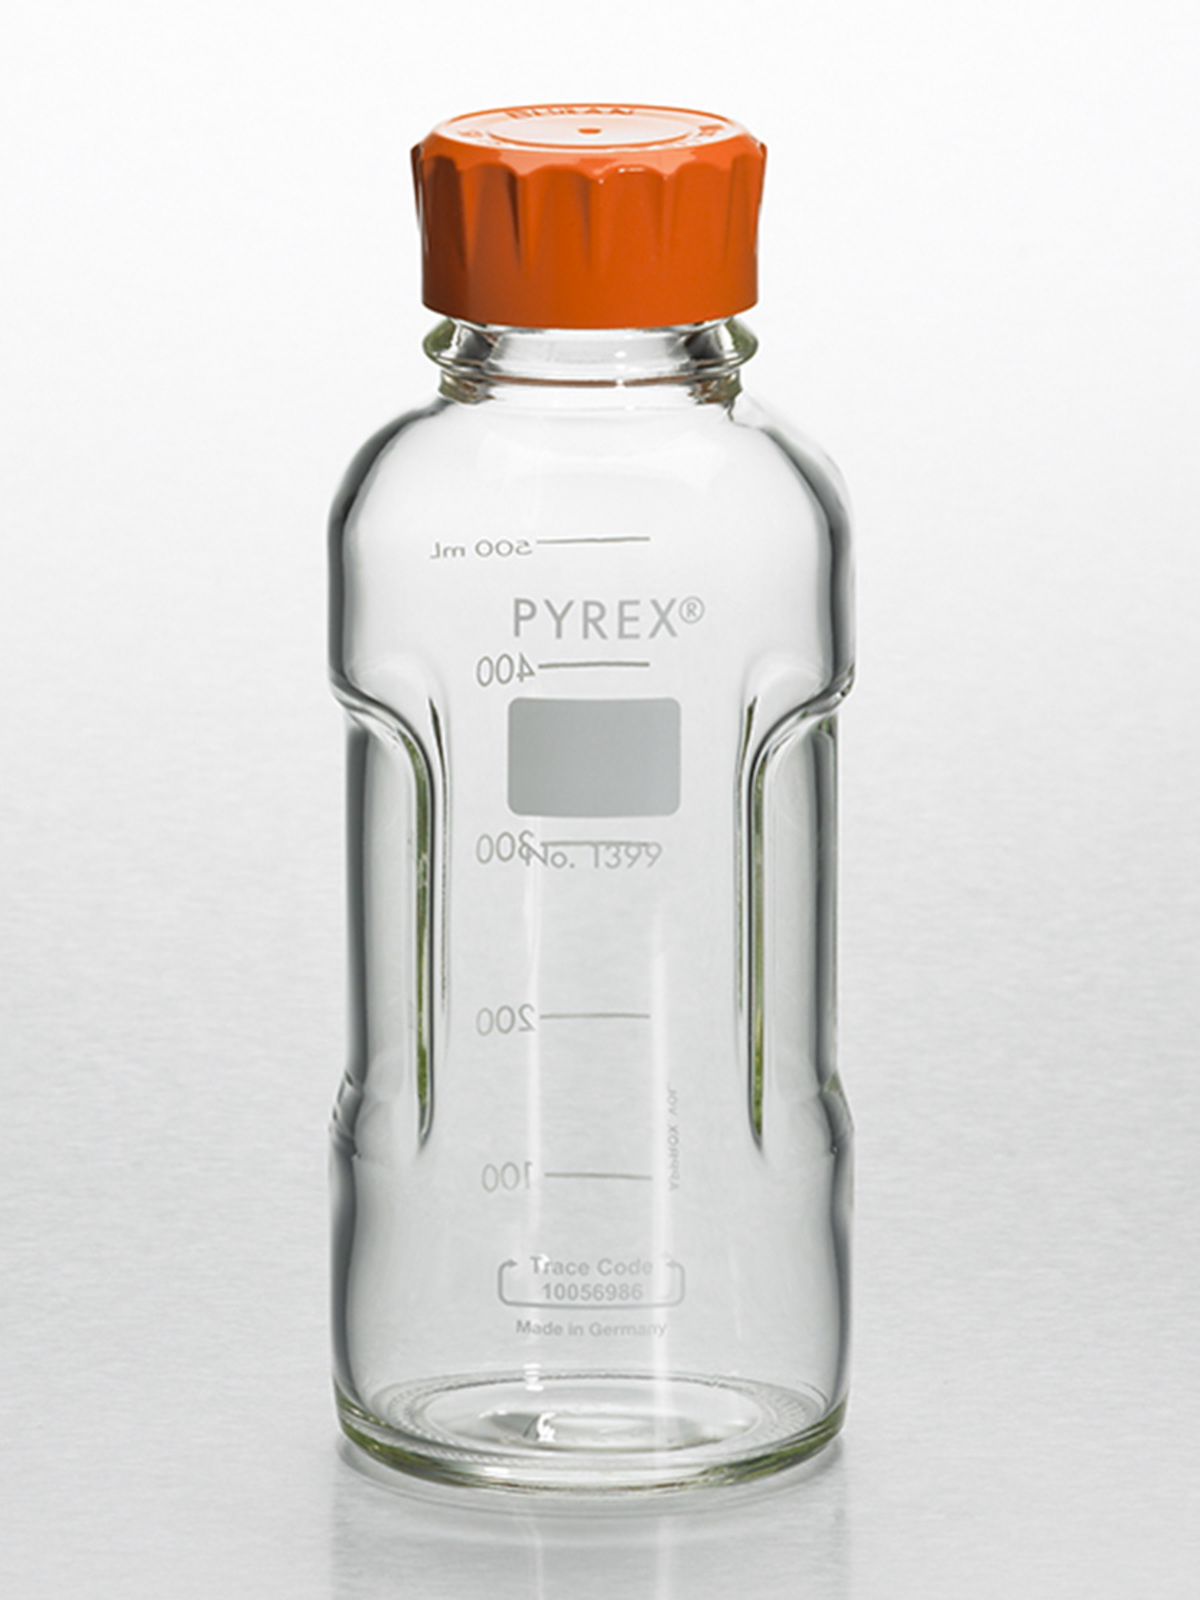 769ad31986cc PYREX® 500 mL Round Media Storage Bottles, with GL45 Screw Cap | 500 ...